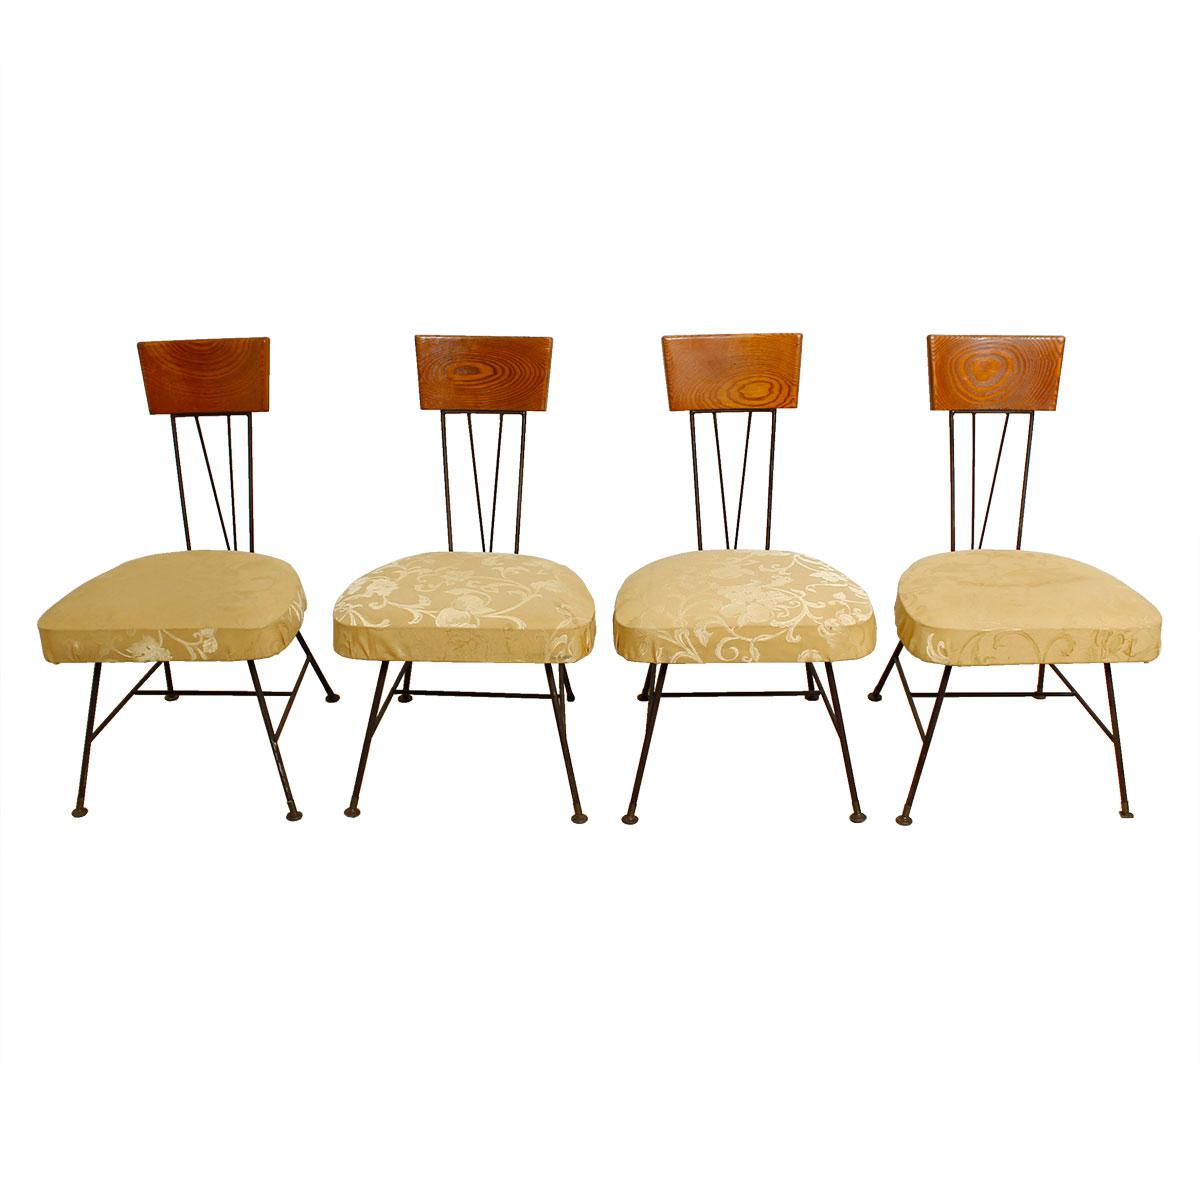 Set of 4 Iron, Wood and Upholstery Chairs in the Style of Paul McCobb